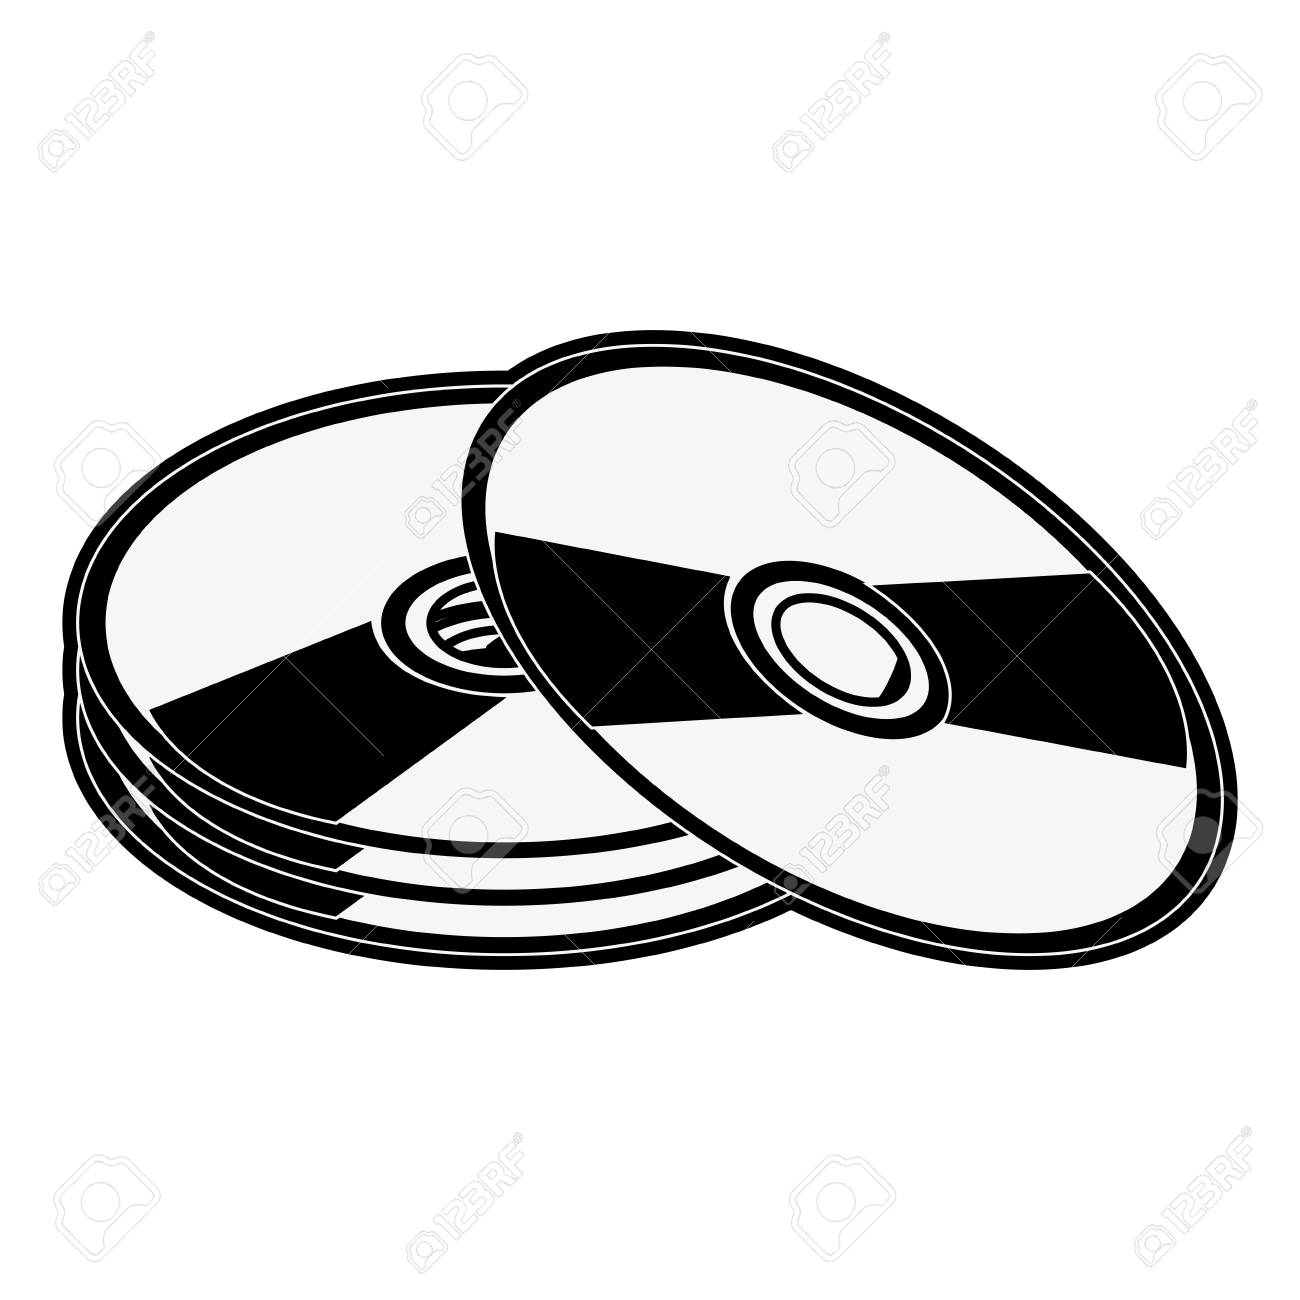 cd compact disk icon image vector illustration design black...